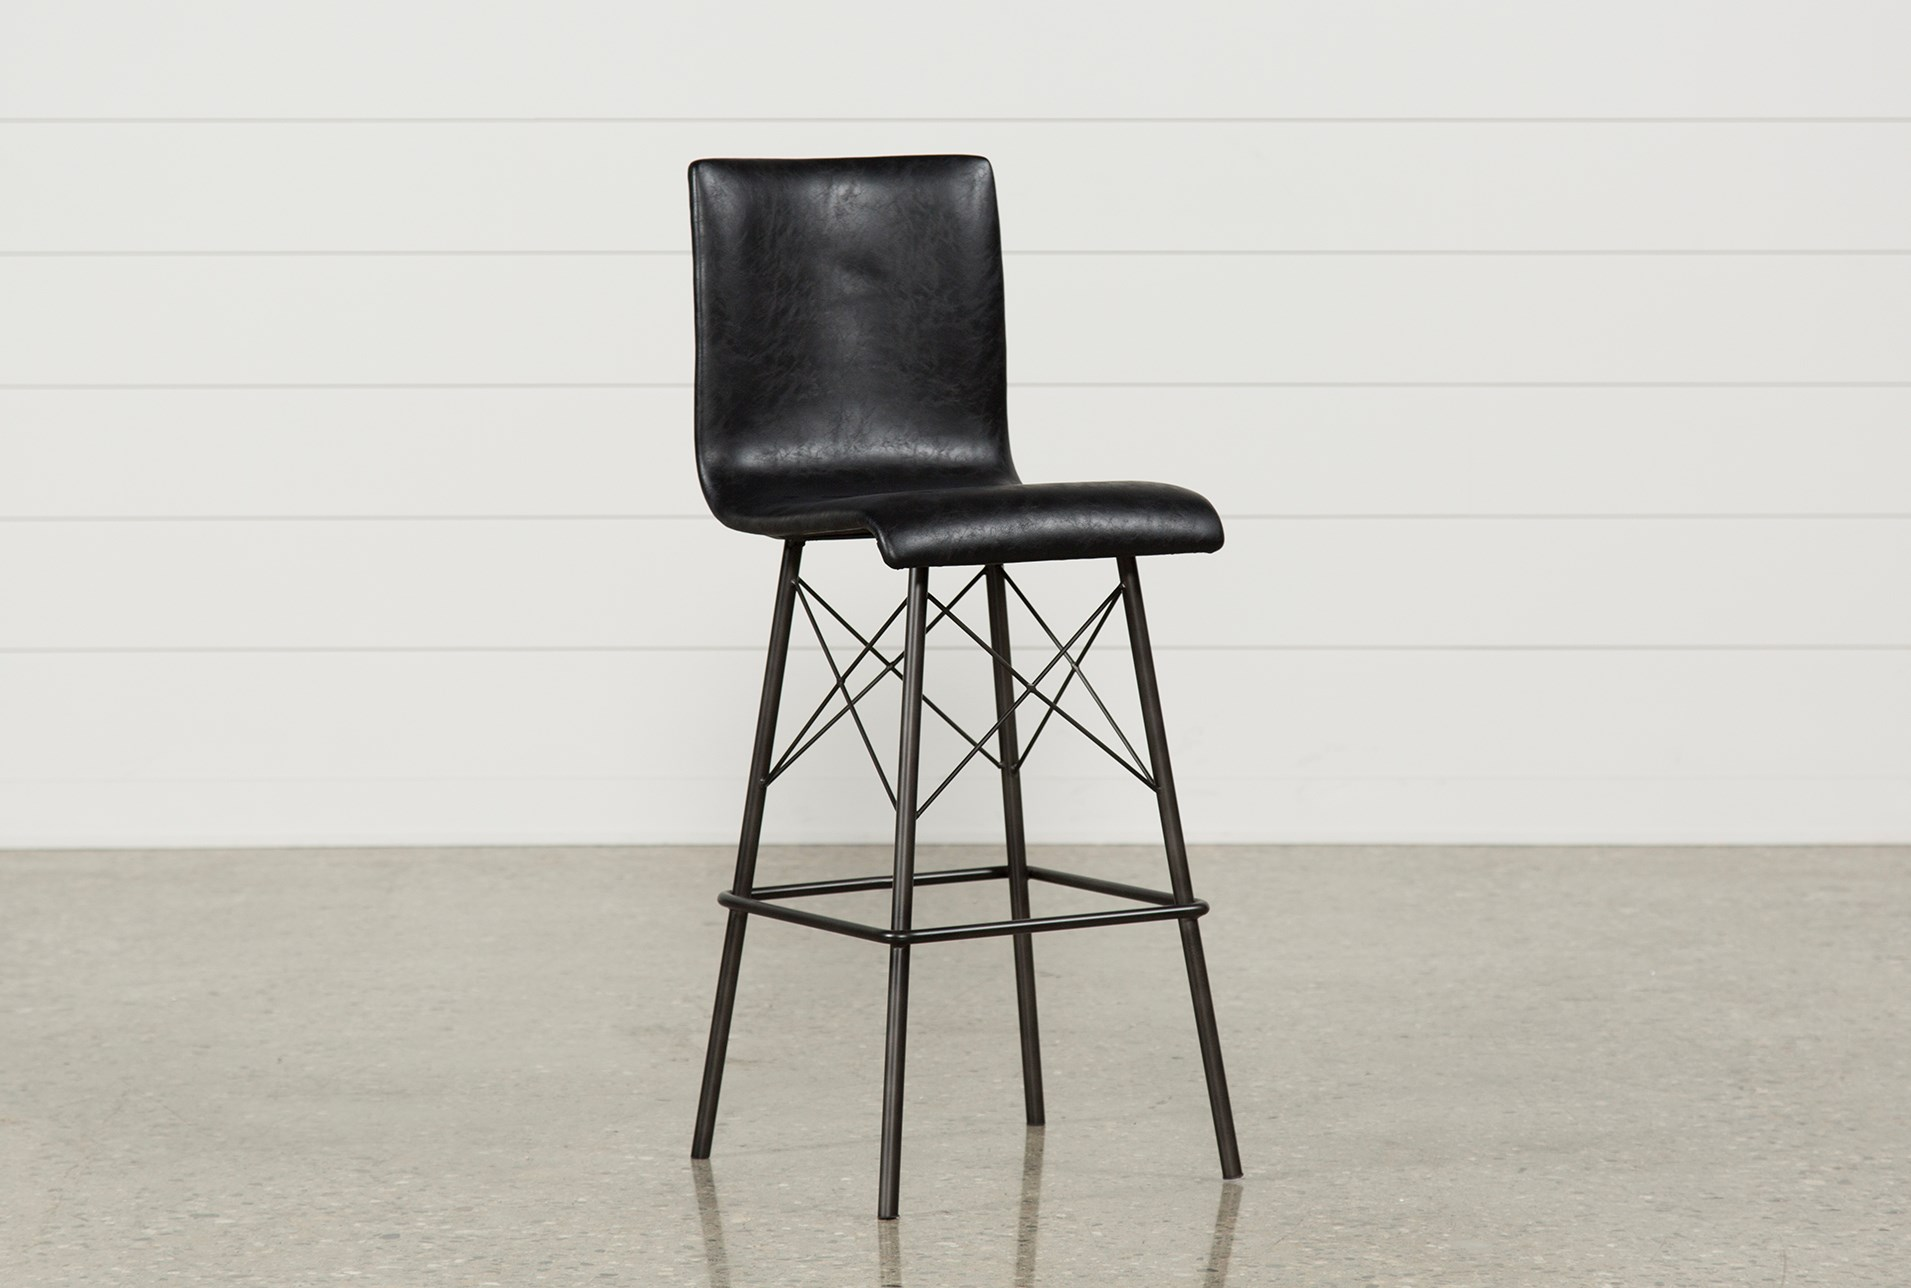 Patrick 30 inch barstool qty 1 has been successfully added to your cart